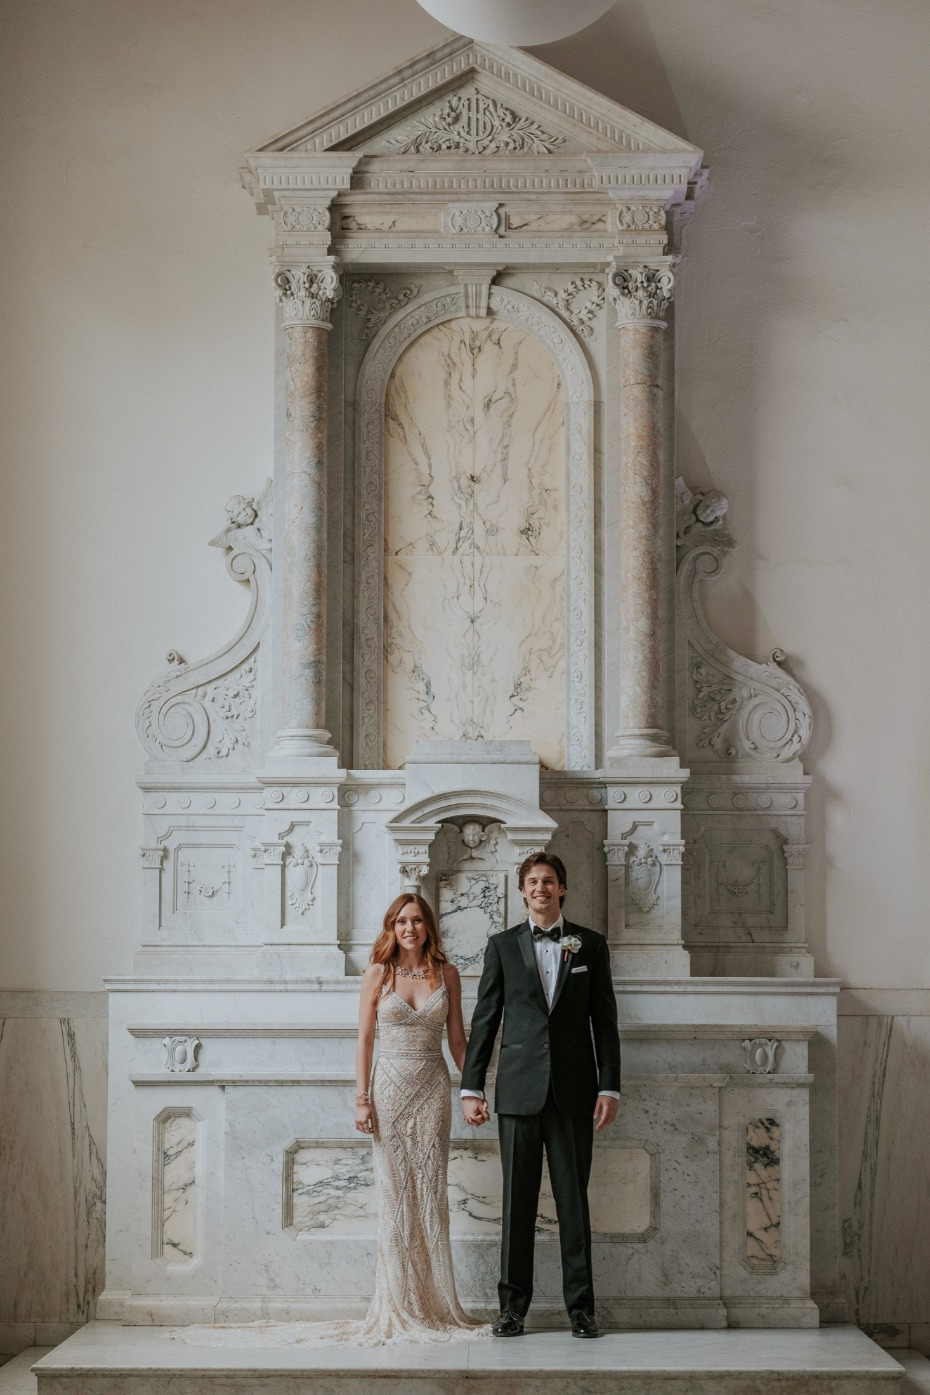 Marble cathedral backdrop